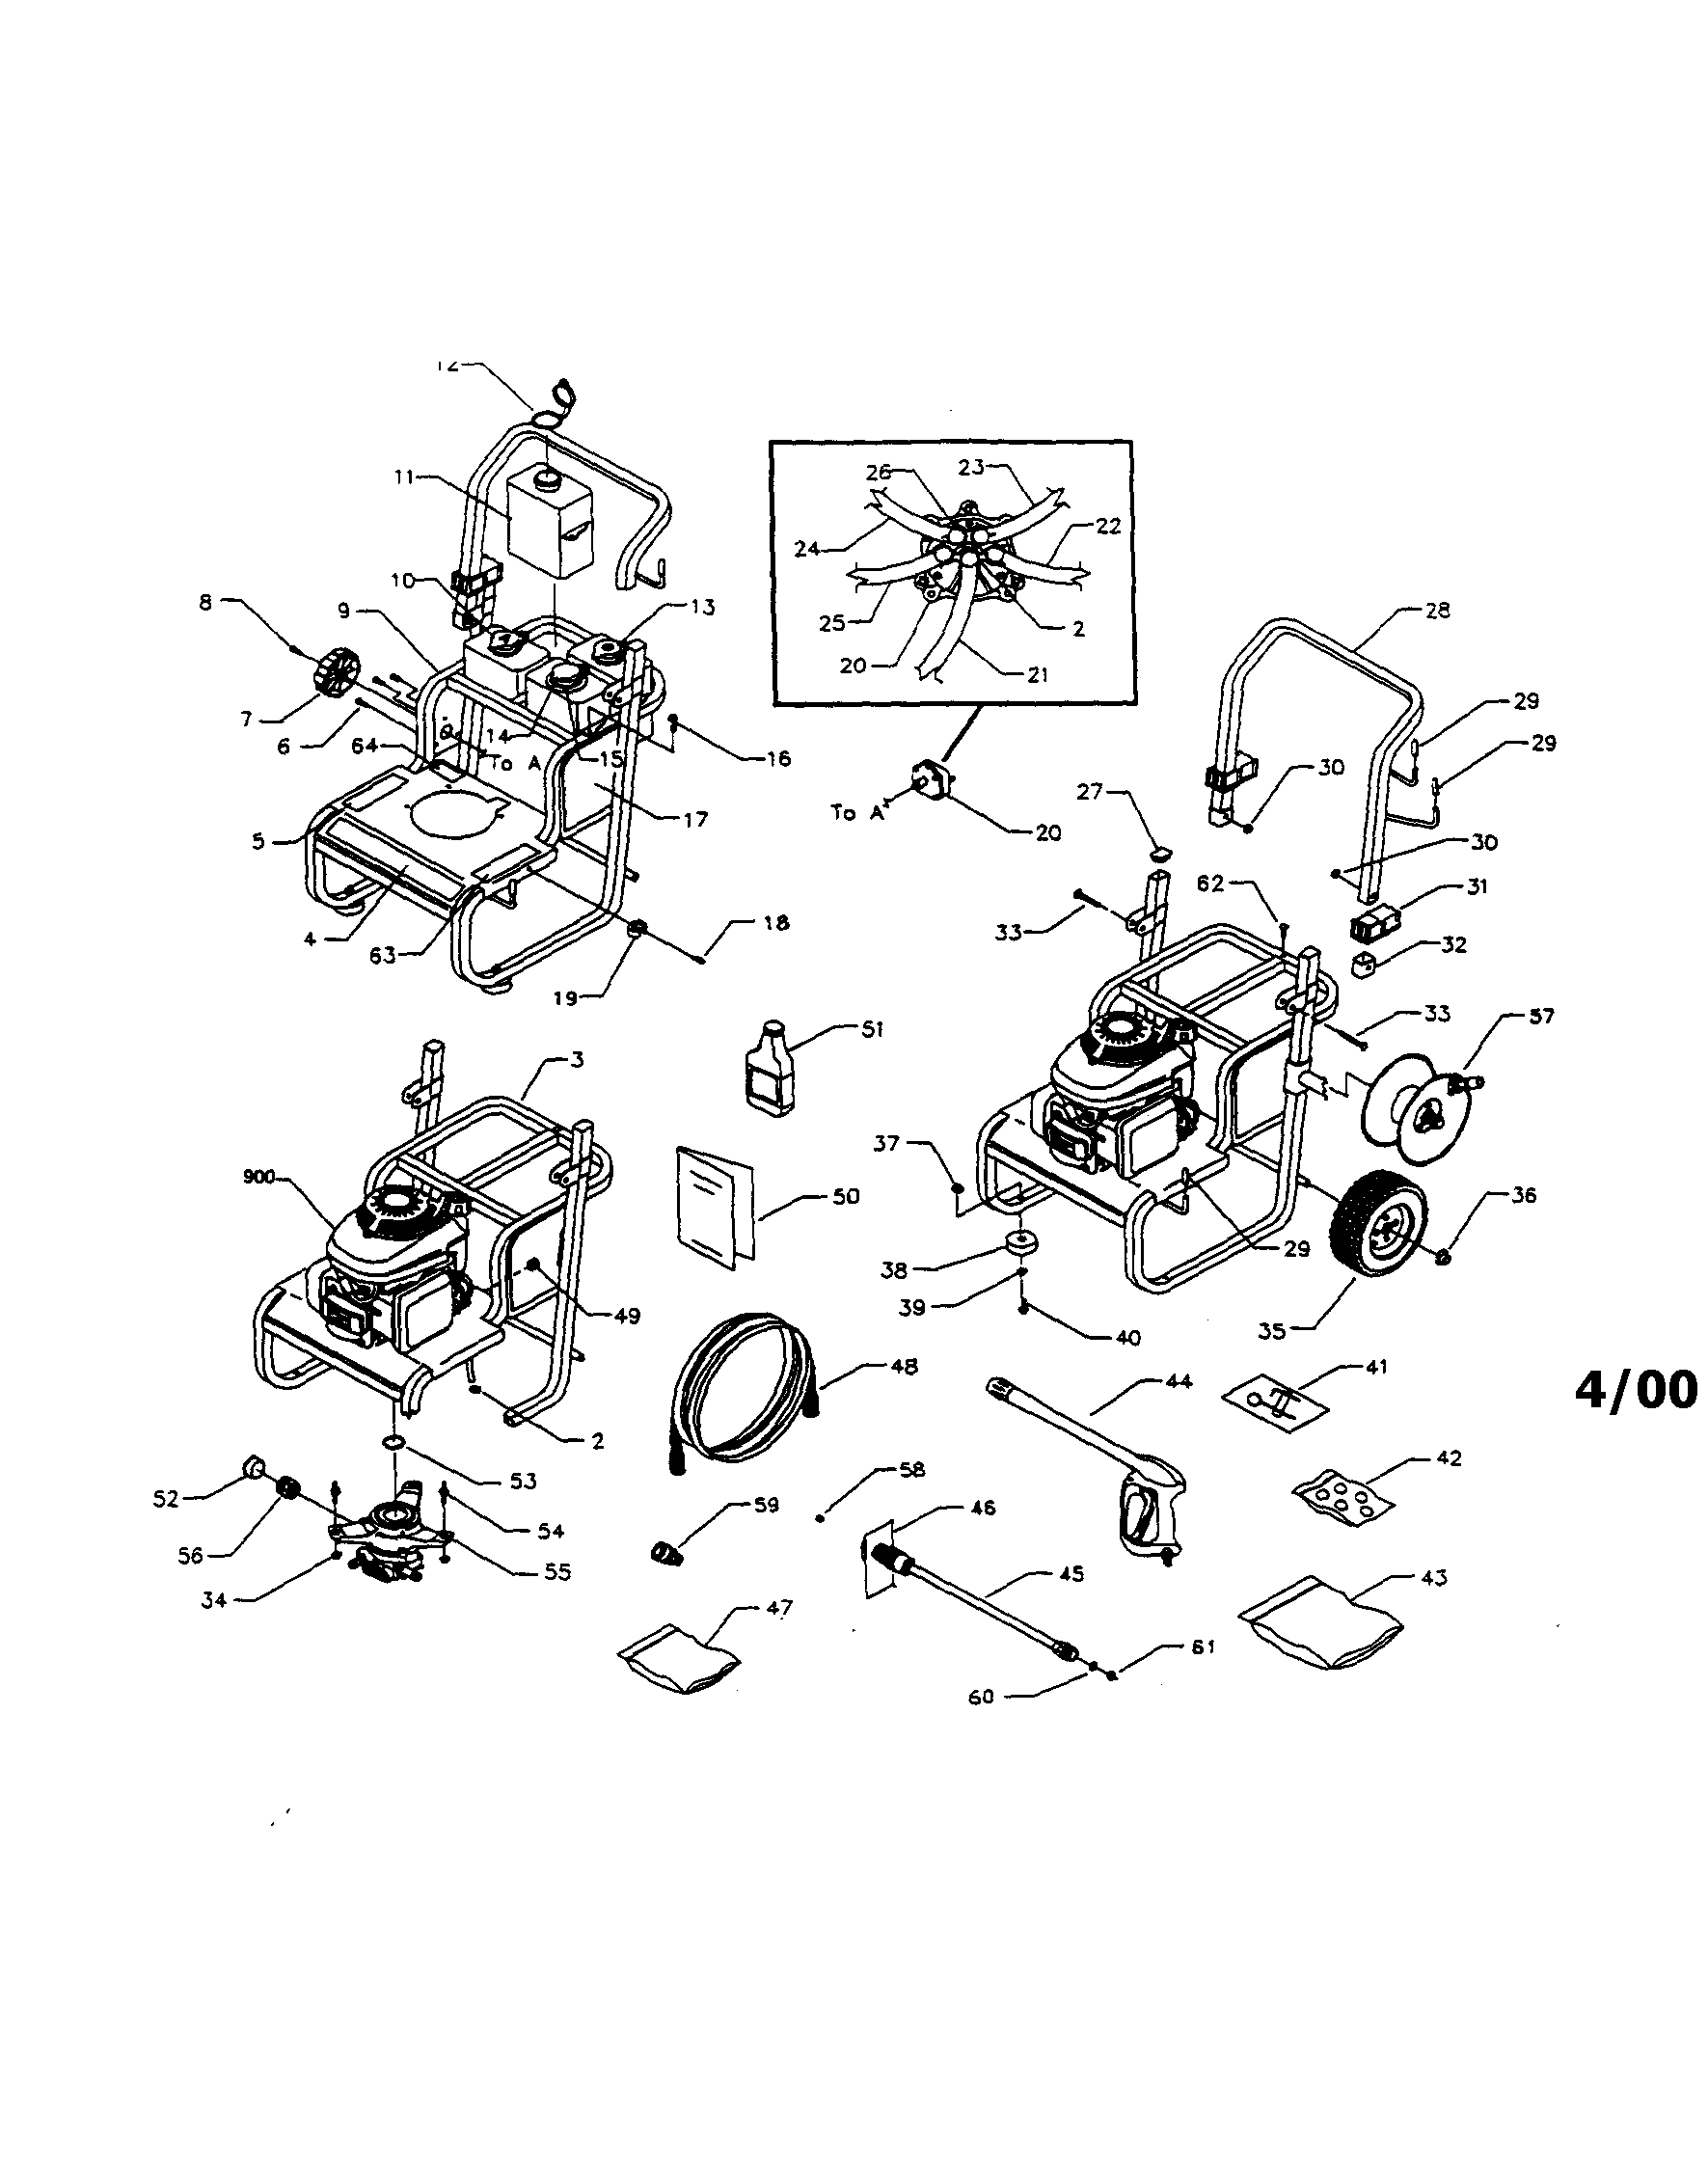 Honda Gcv160 Pressure Washer Pump Parts Diagram